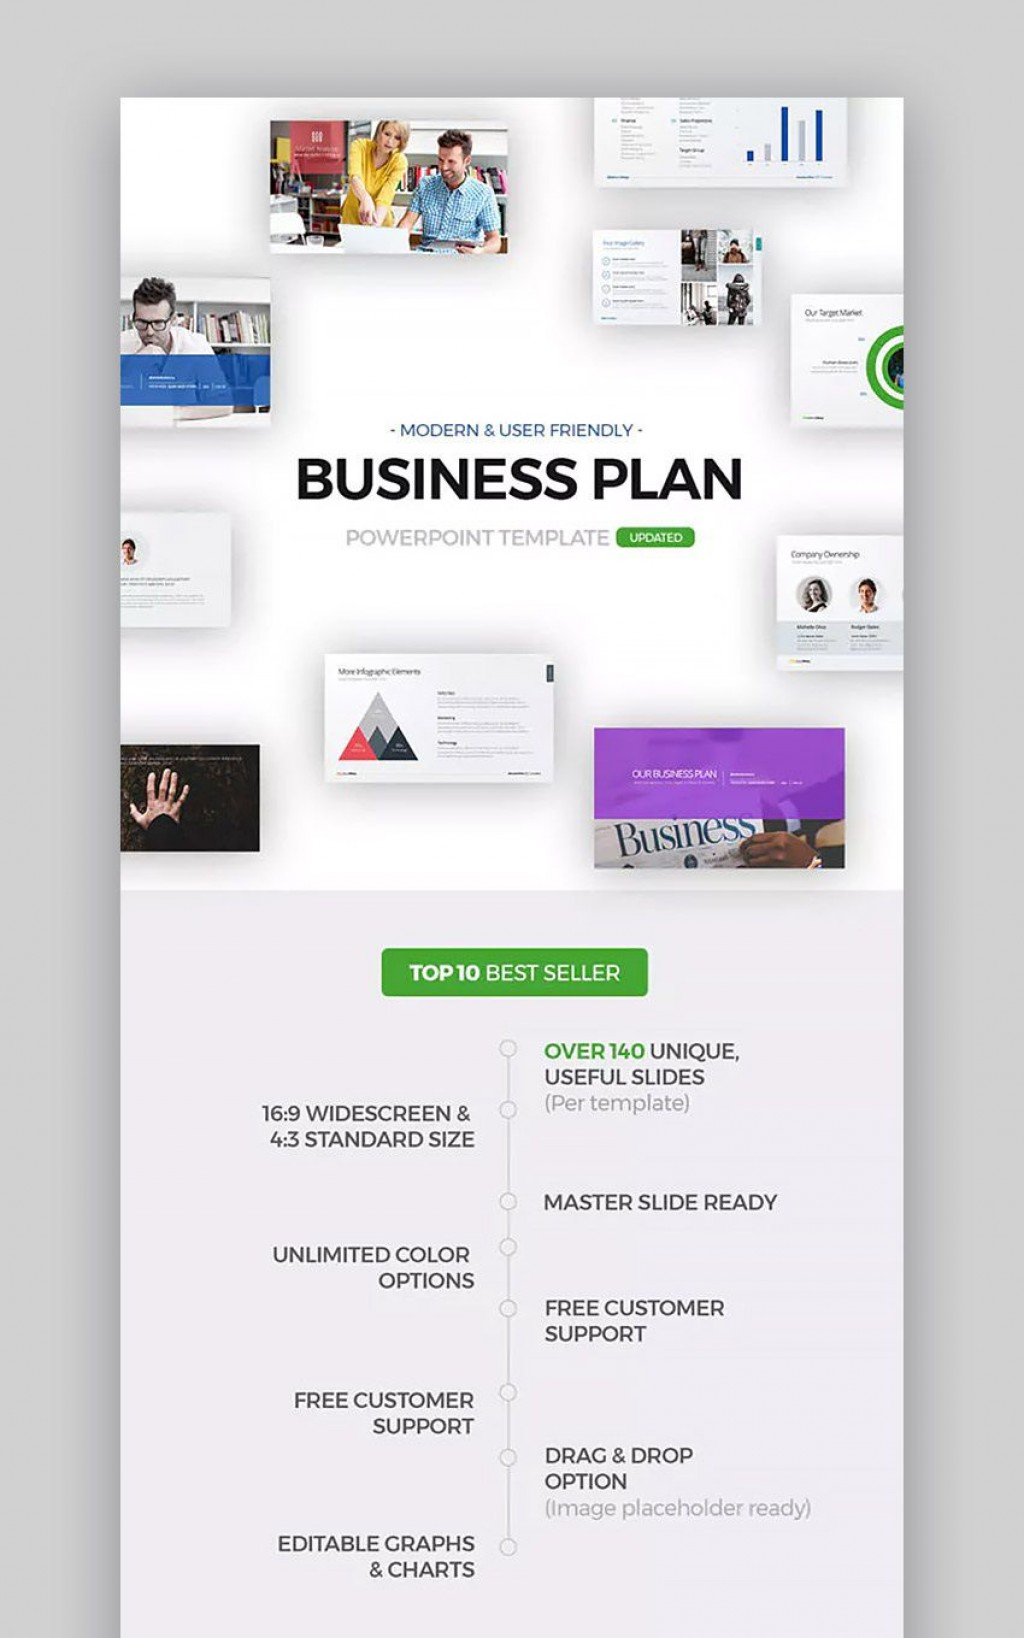 007 Wondrou Excel Busines Plan Template Free High Definition  Startup ContinuityLarge